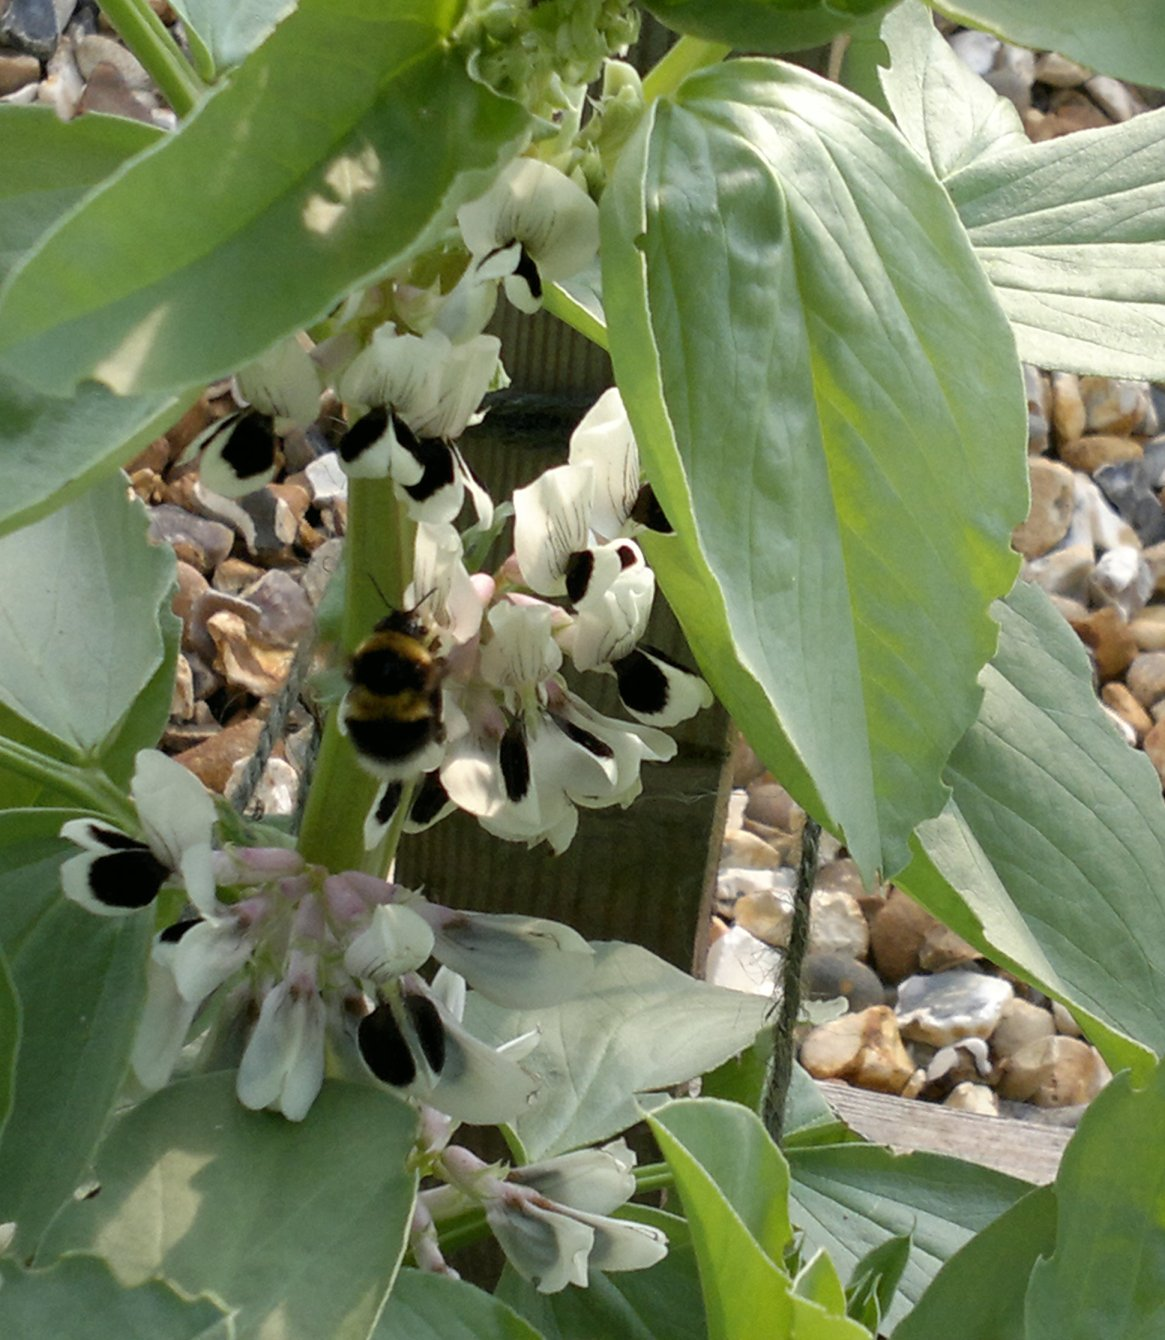 Bumblebee busy pollinating the broad beans